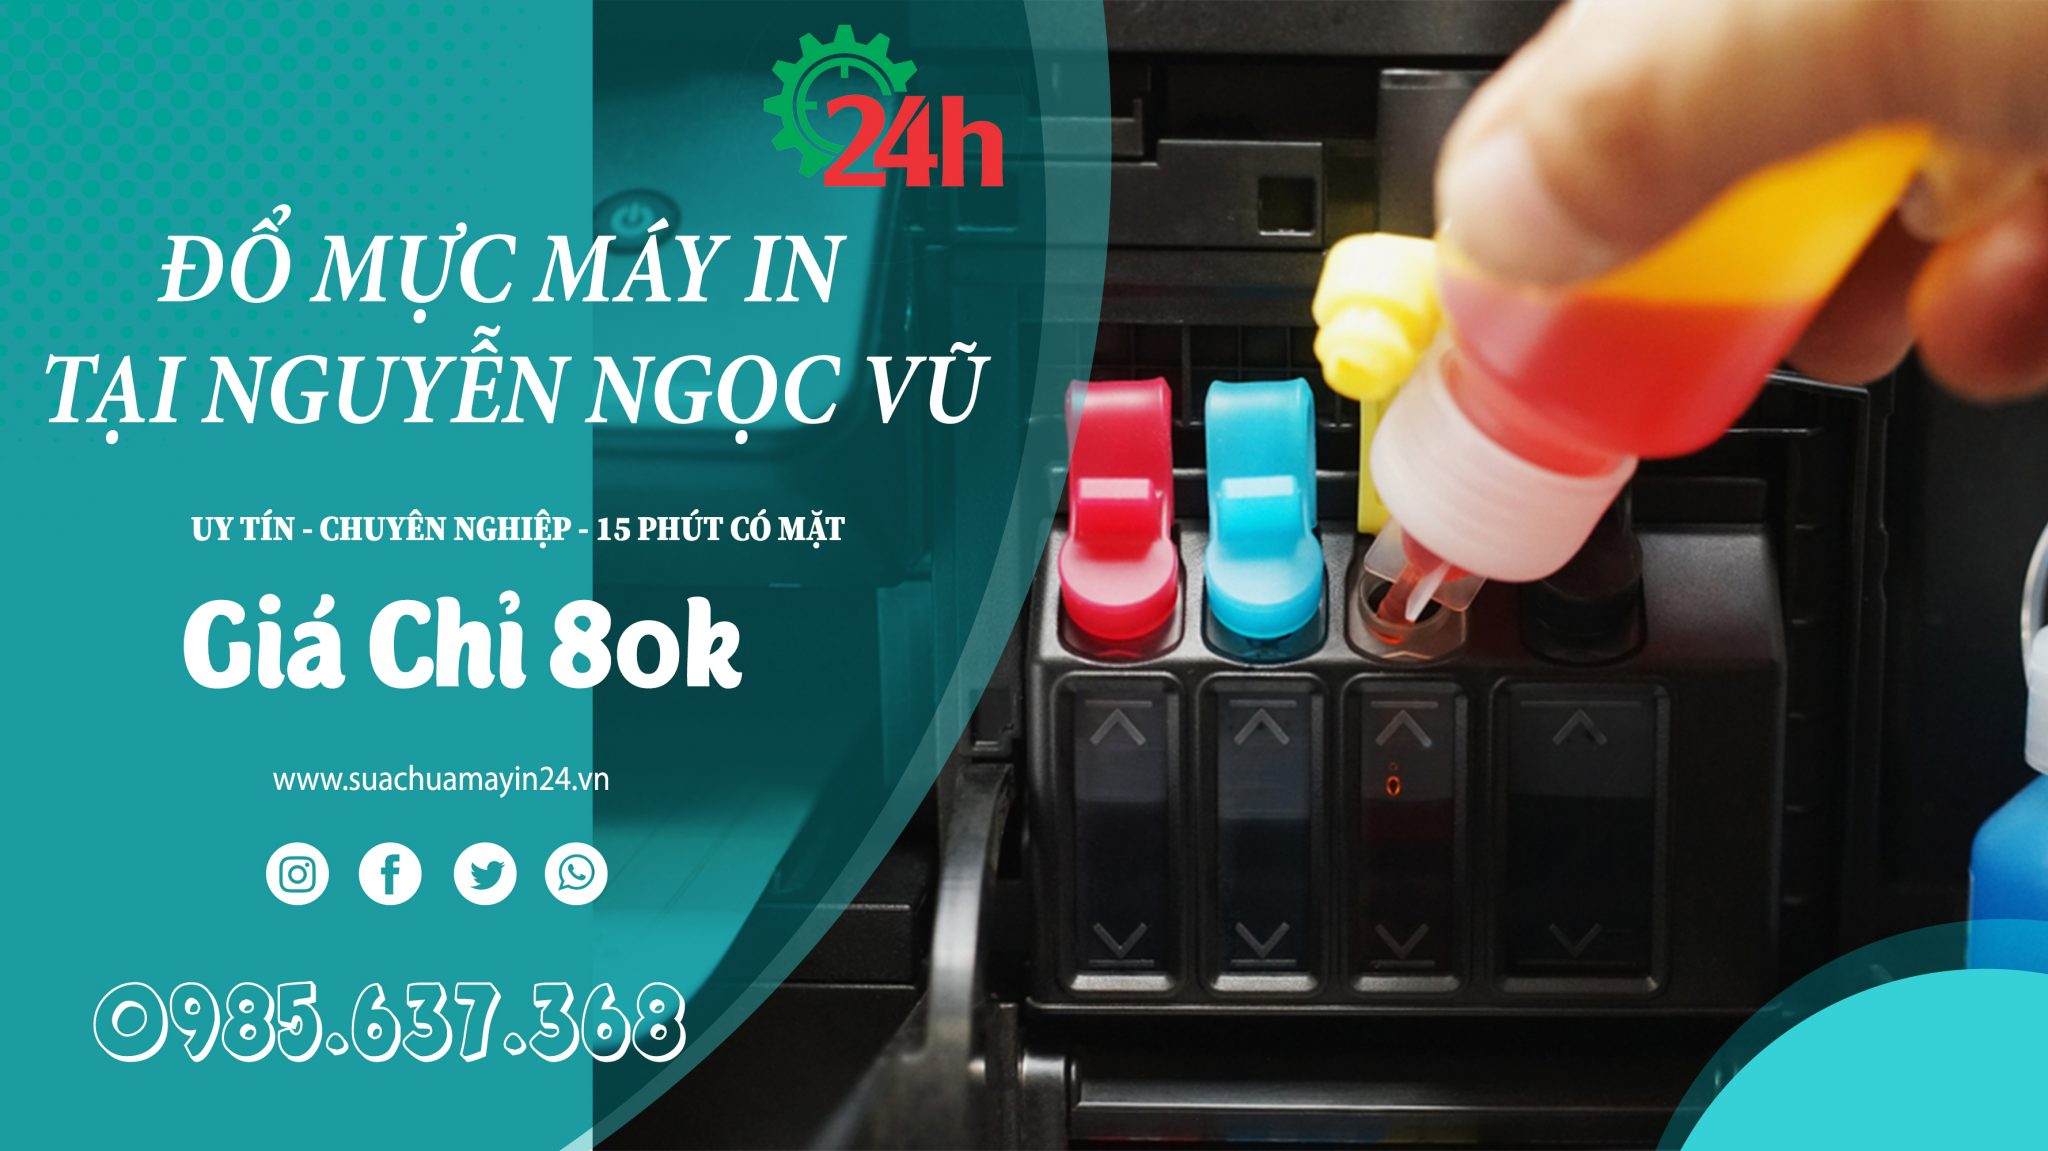 do-muc-may-in-nguyen-ngoc-vu